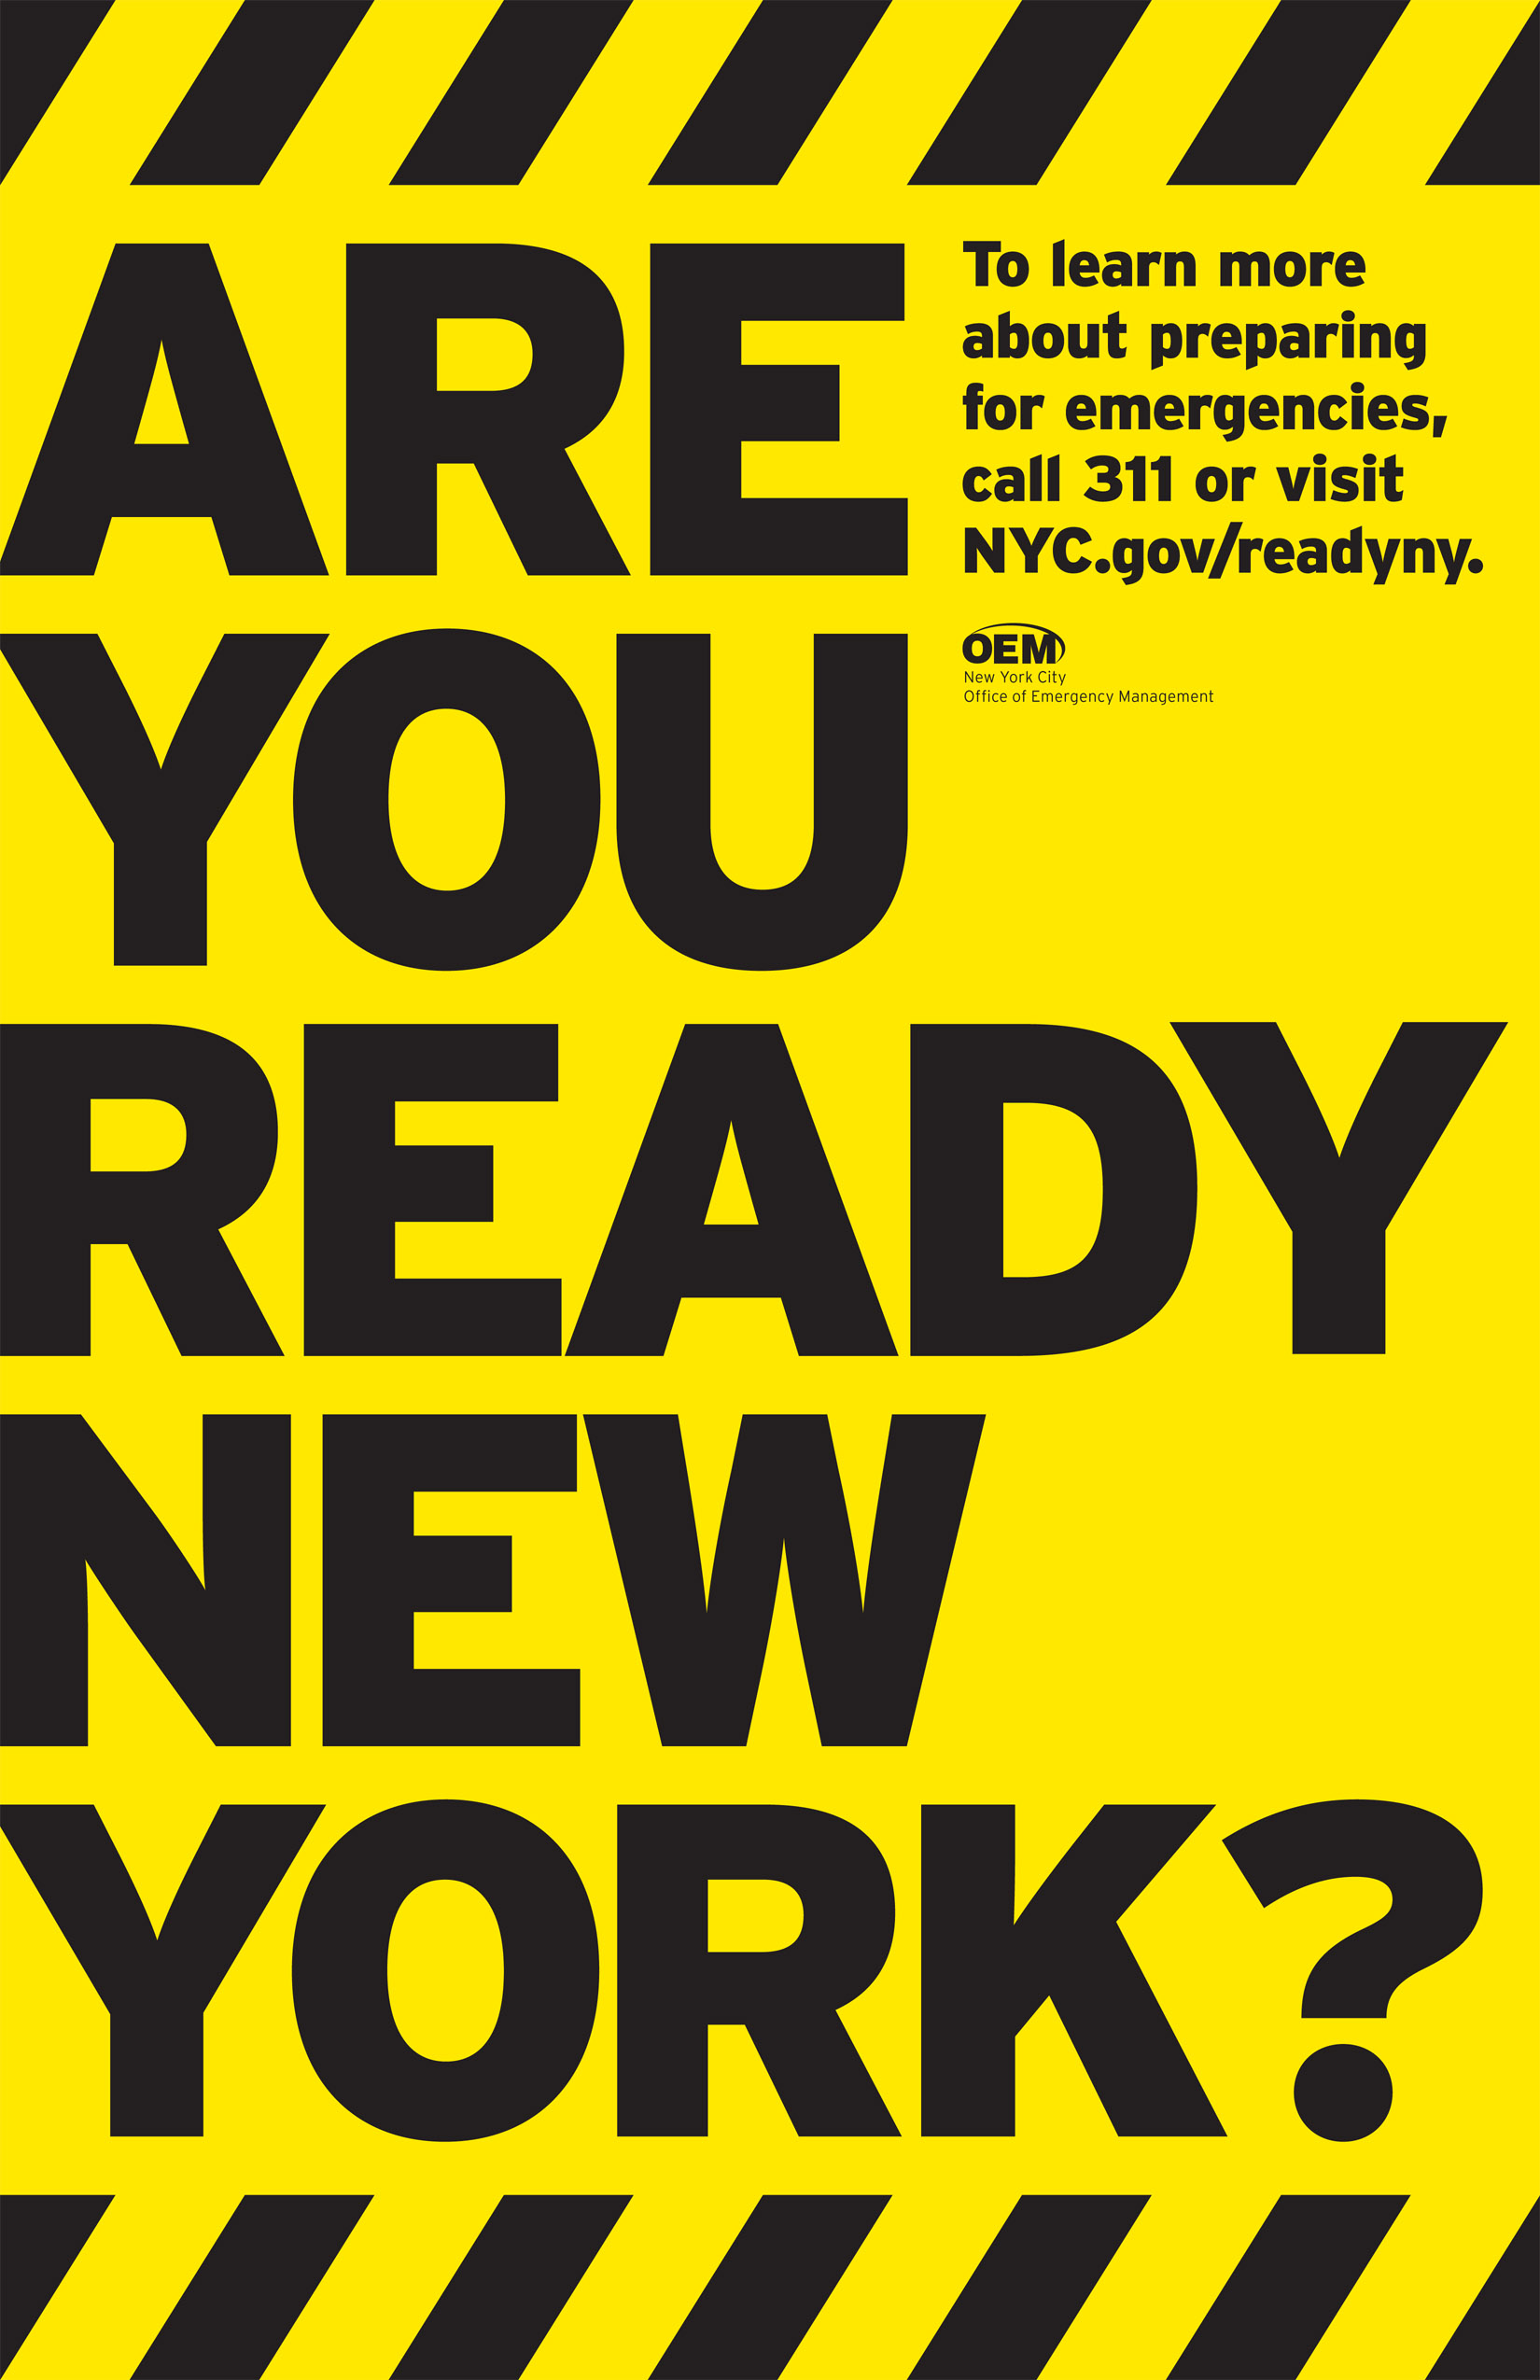 Project image 1 for Brochures, New York City Office of Emergency Management